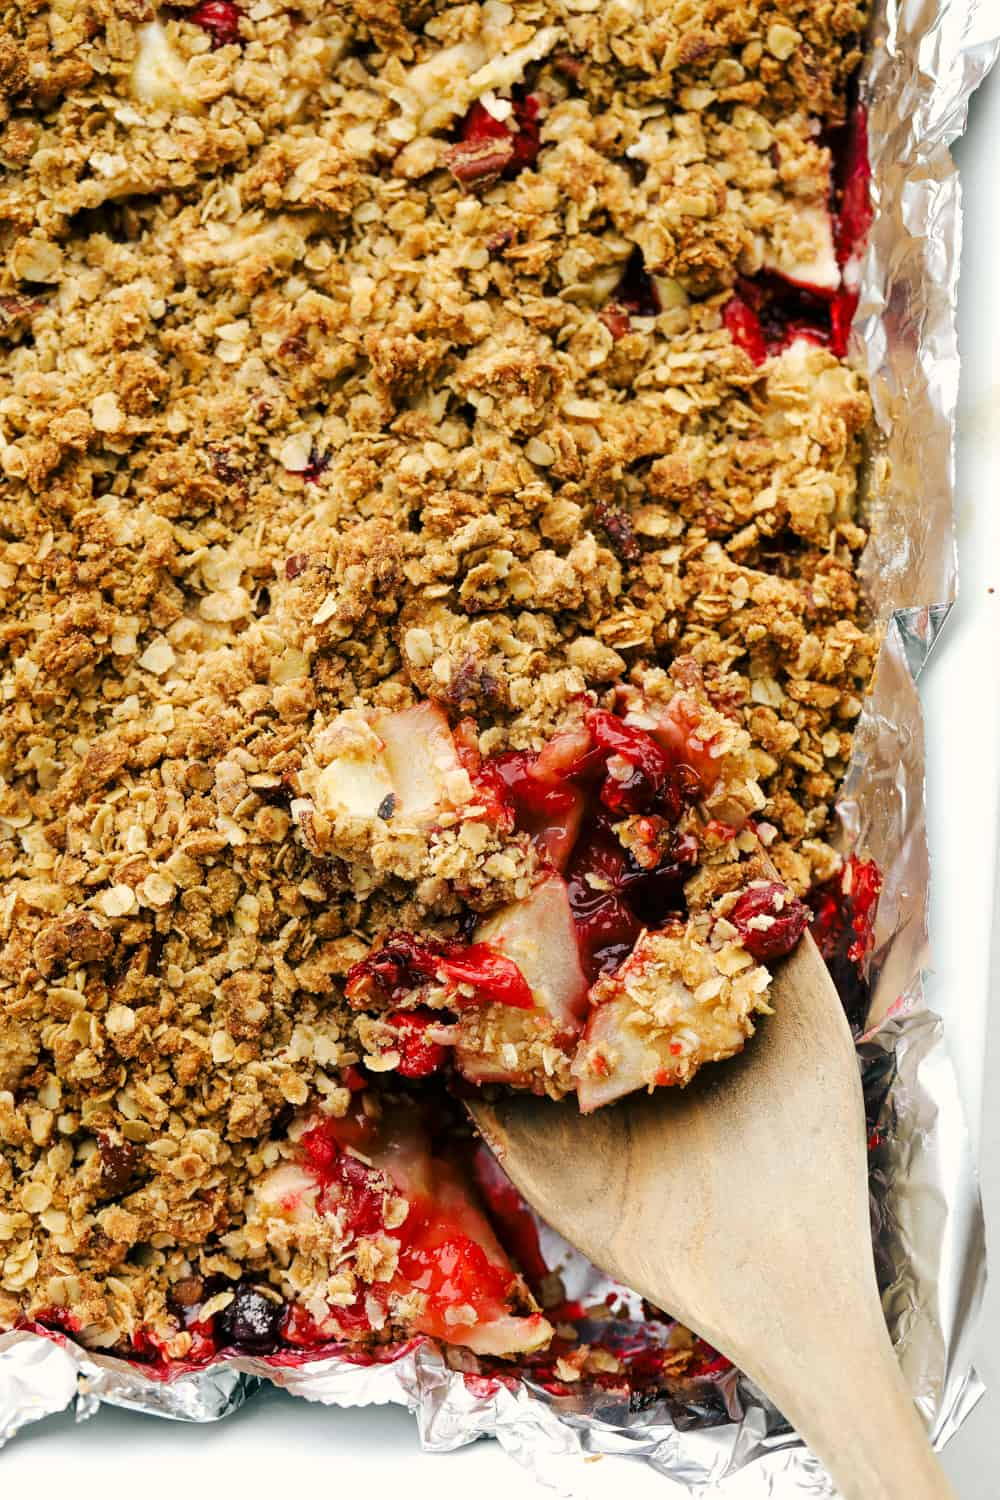 Cranberry apple crisp in a baking pan with a wooden spoon taking out a scoop.